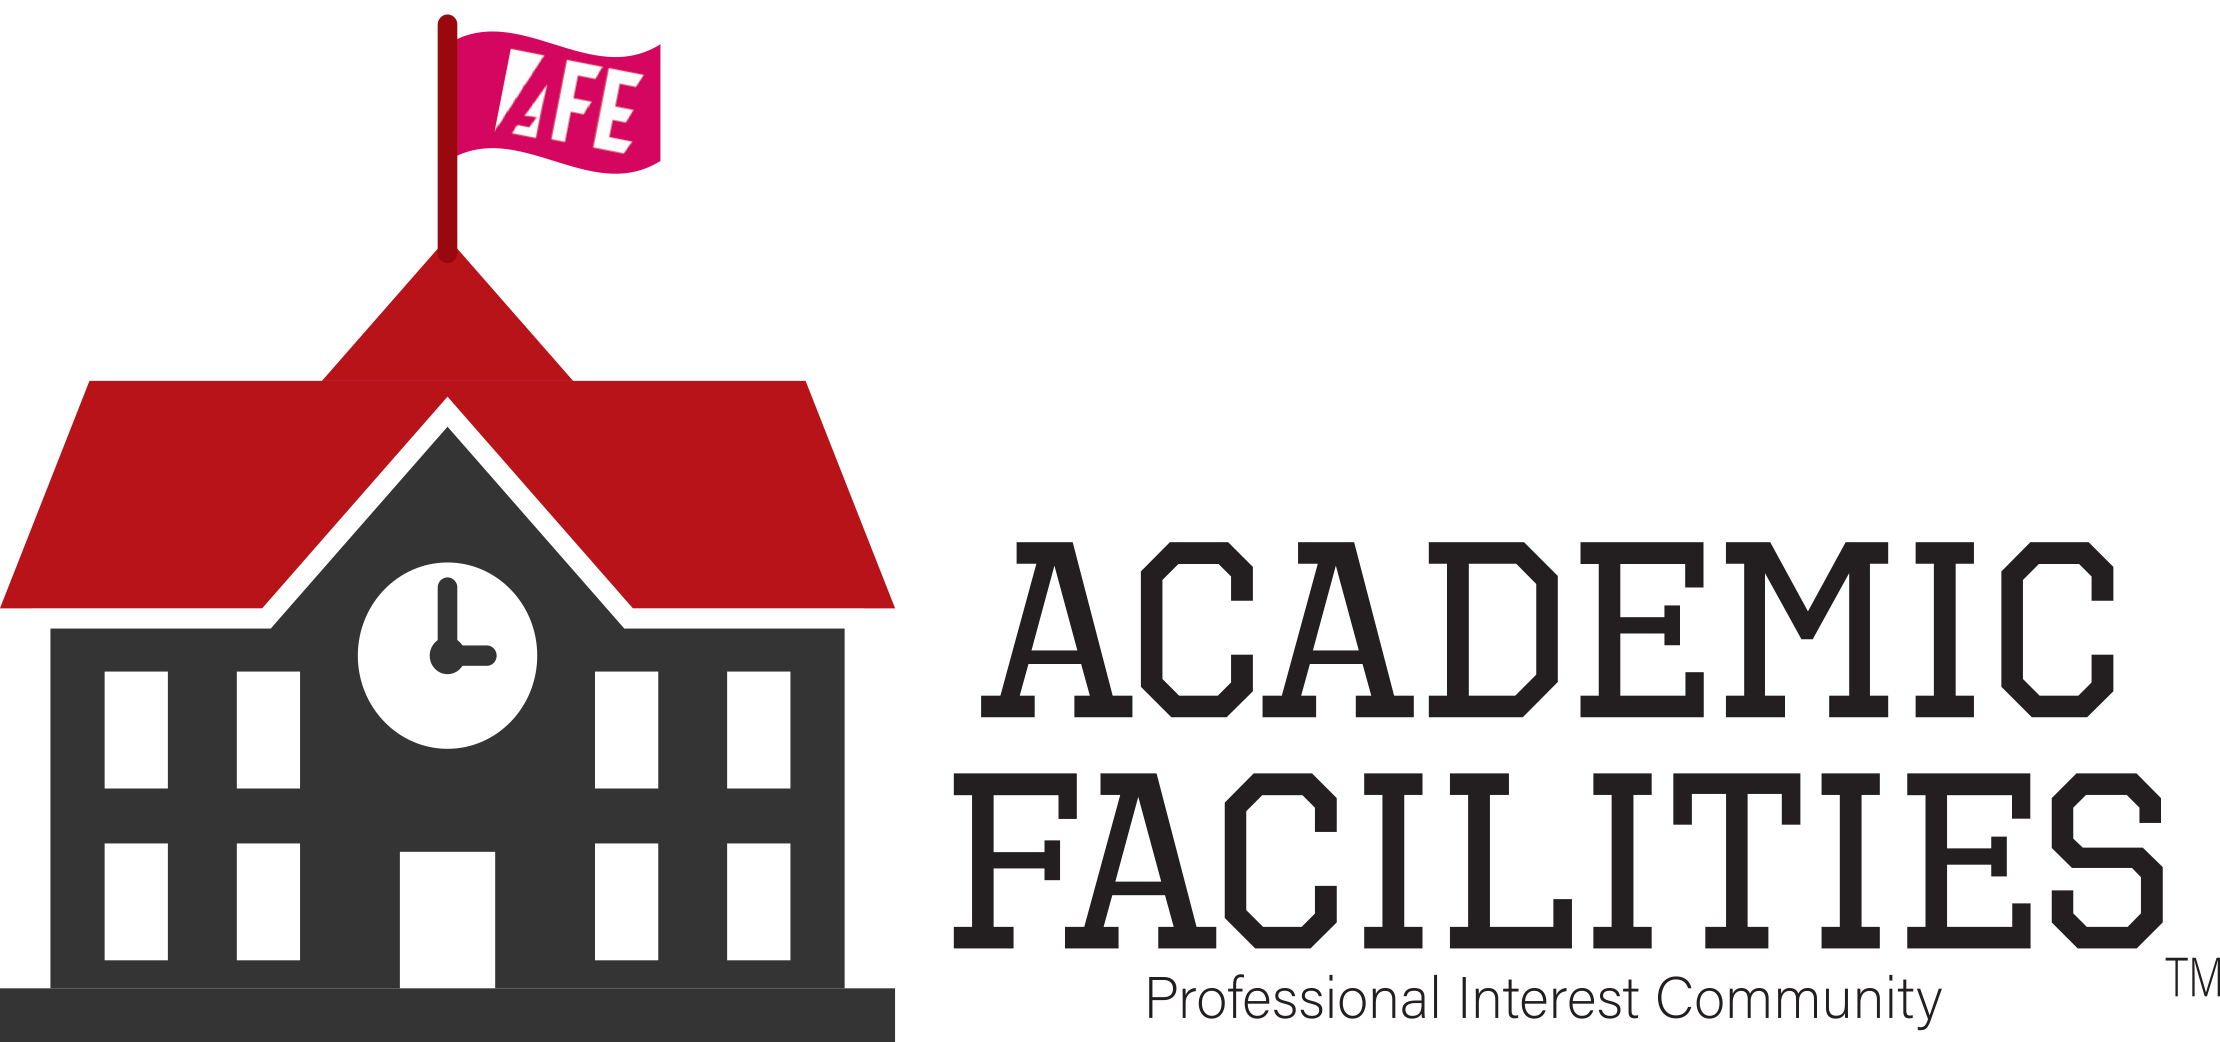 AFE Academic Facilities PIC Logo